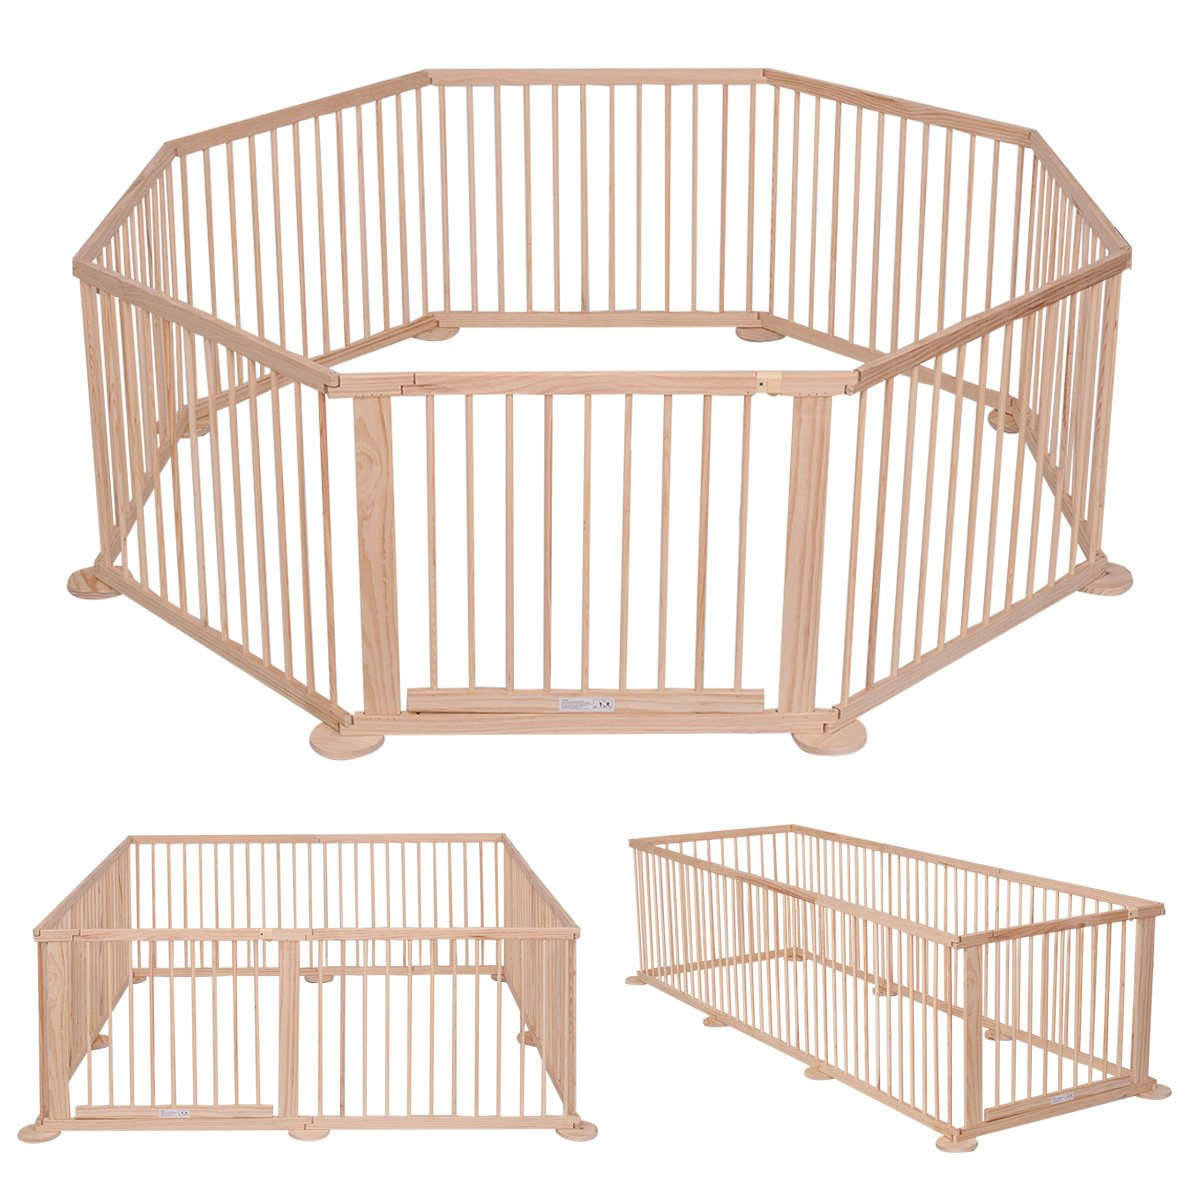 COSTWAY Baby Playpen Wooden Foldable Children Kids Child 12 Poles/Bars Play Pens Room Divider Heavy Duty (6 Panels) 2664BBNEW